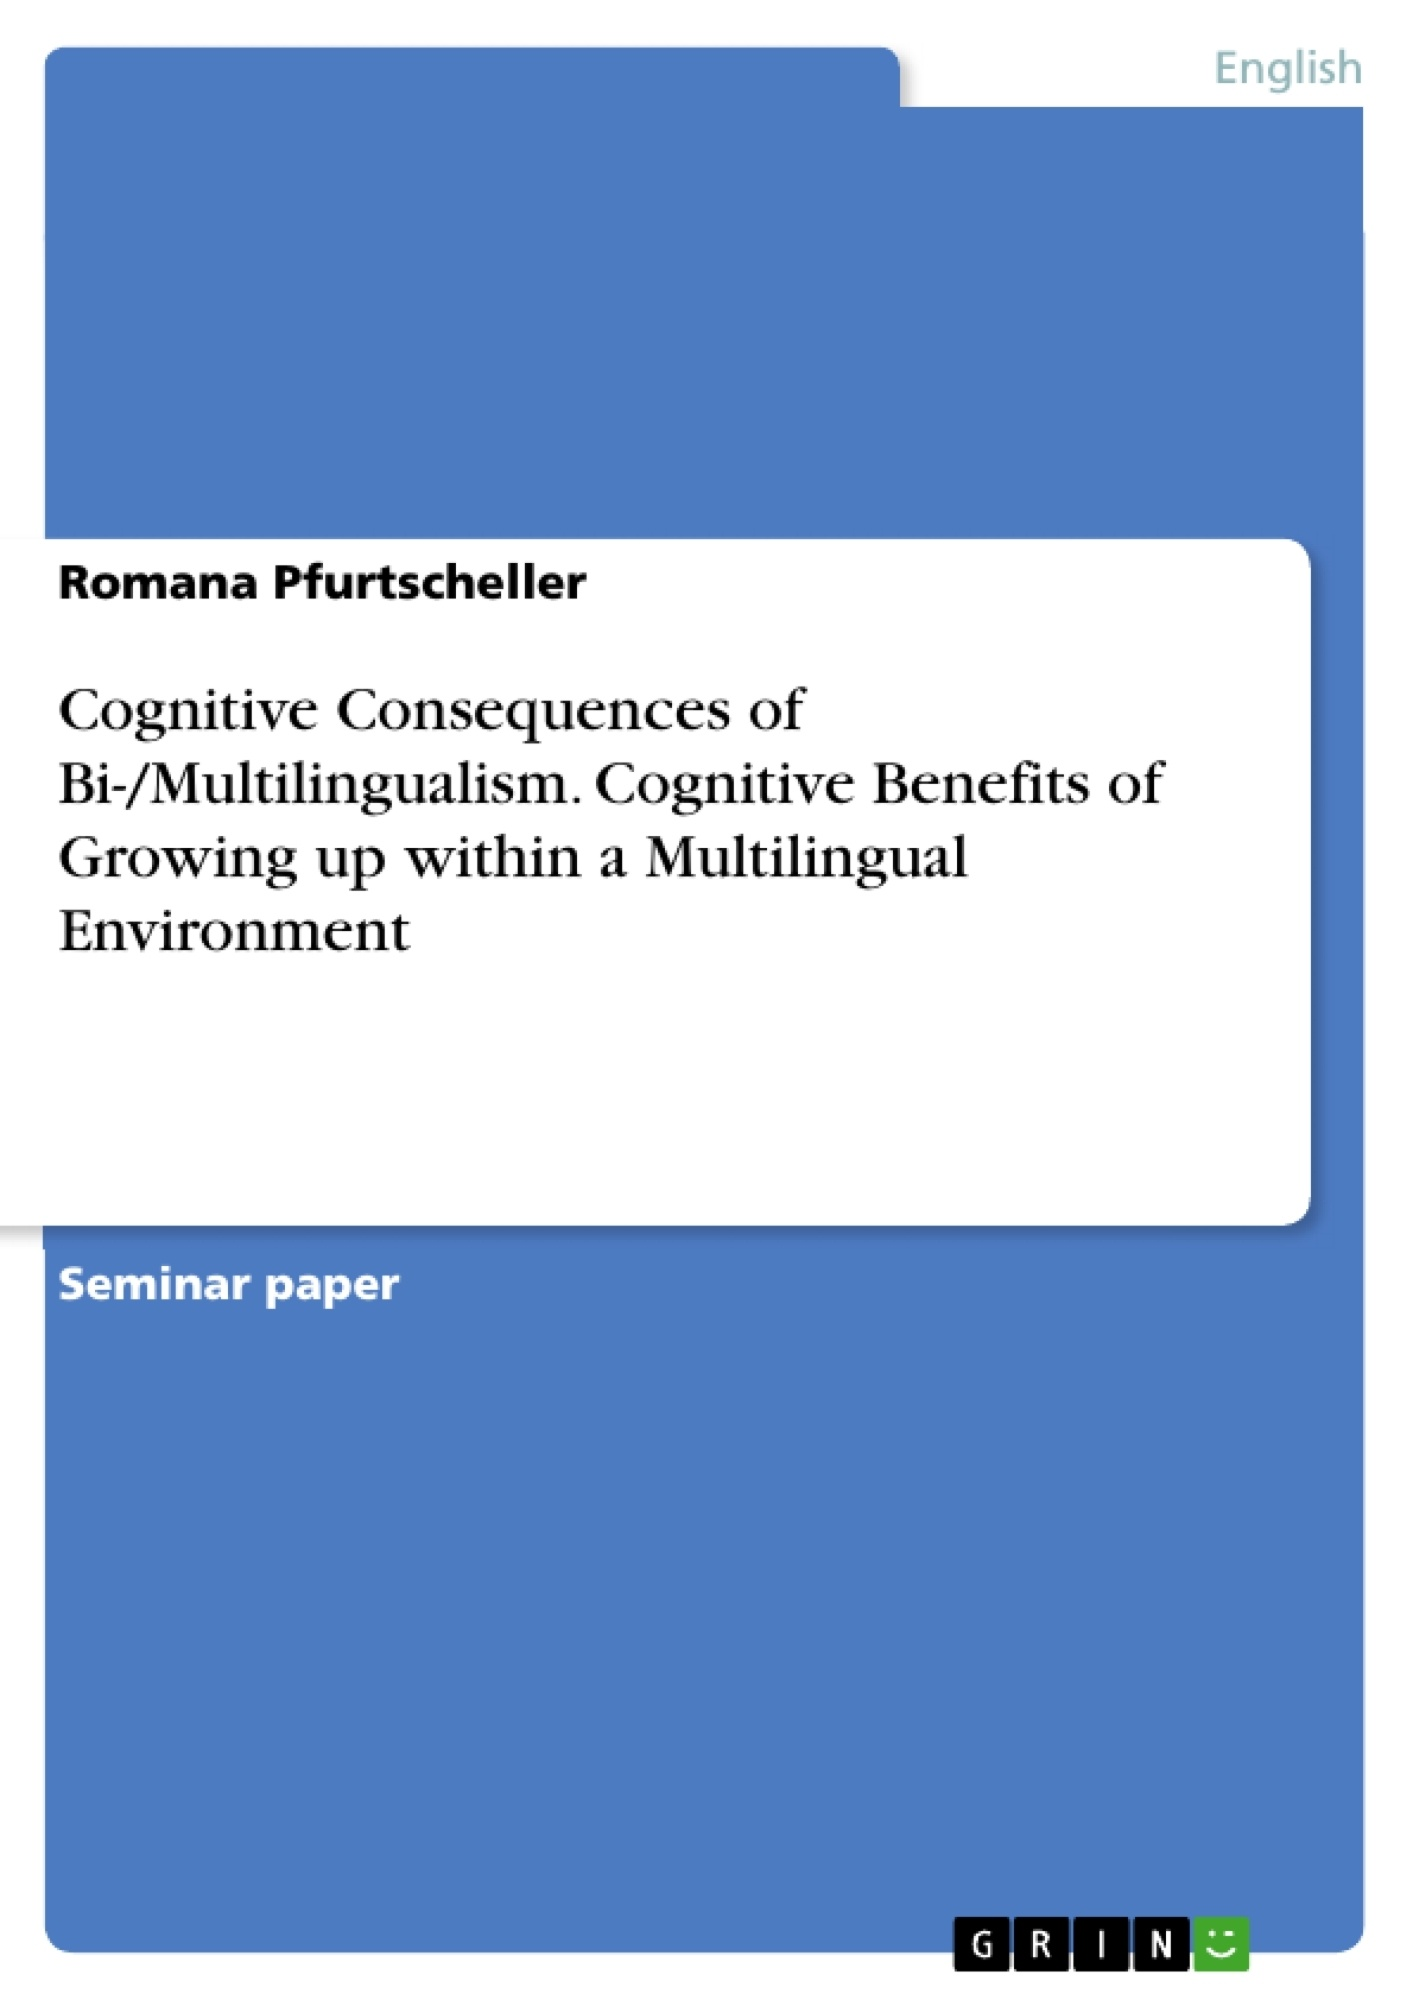 Title: Cognitive Consequences of Bi-/Multilingualism. Cognitive Benefits of Growing up within a Multilingual Environment